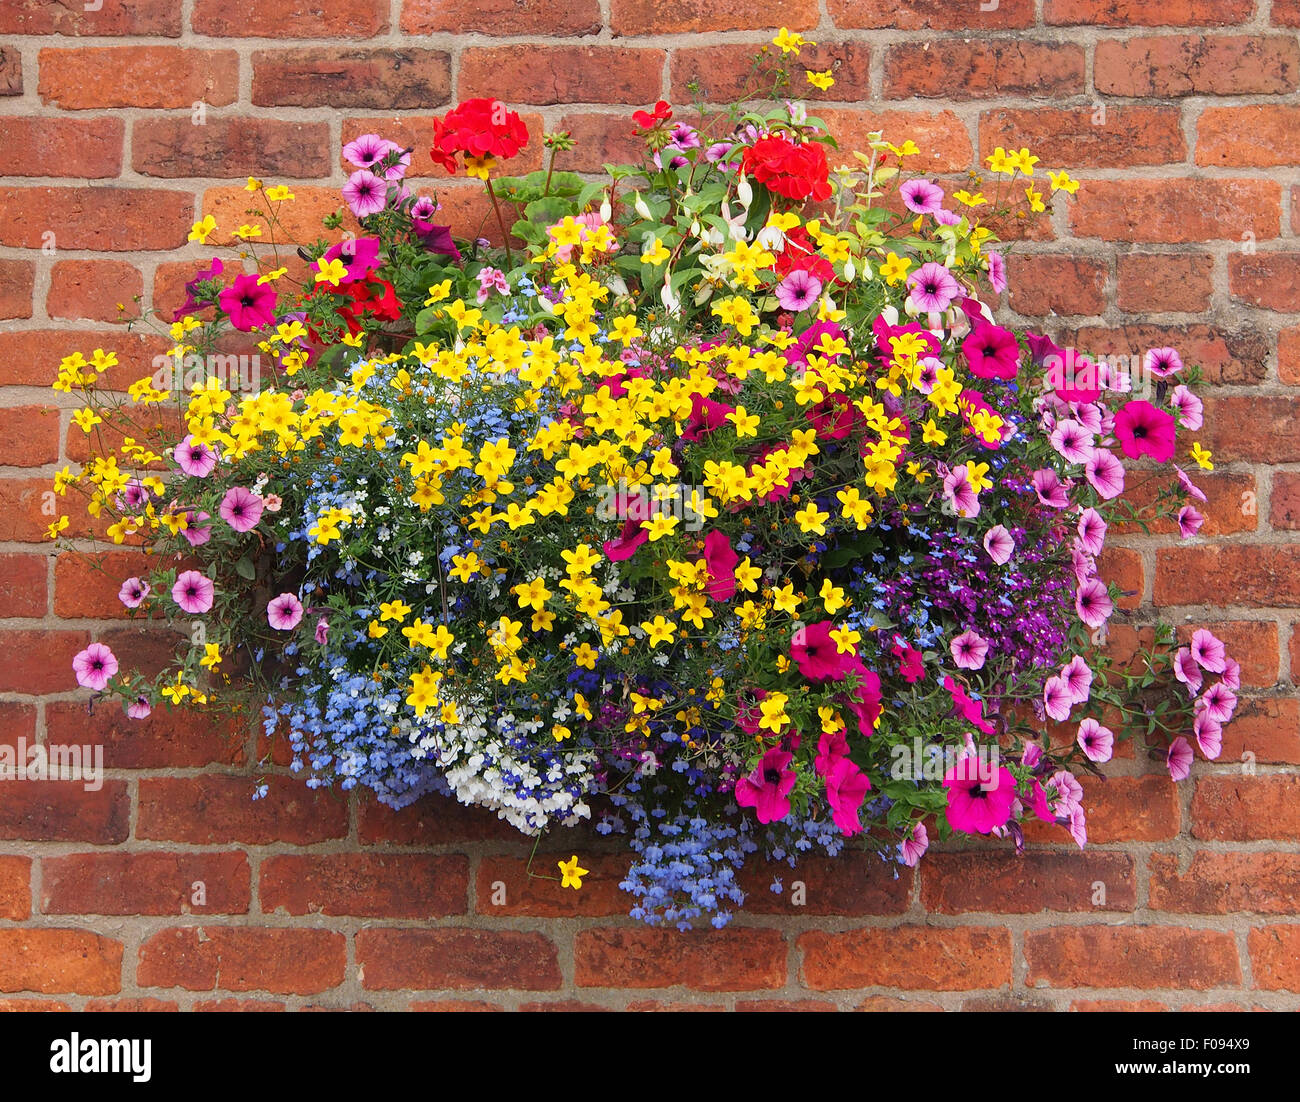 Pub With Hanging Baskets Stock Photos & Pub With Hanging Baskets ...